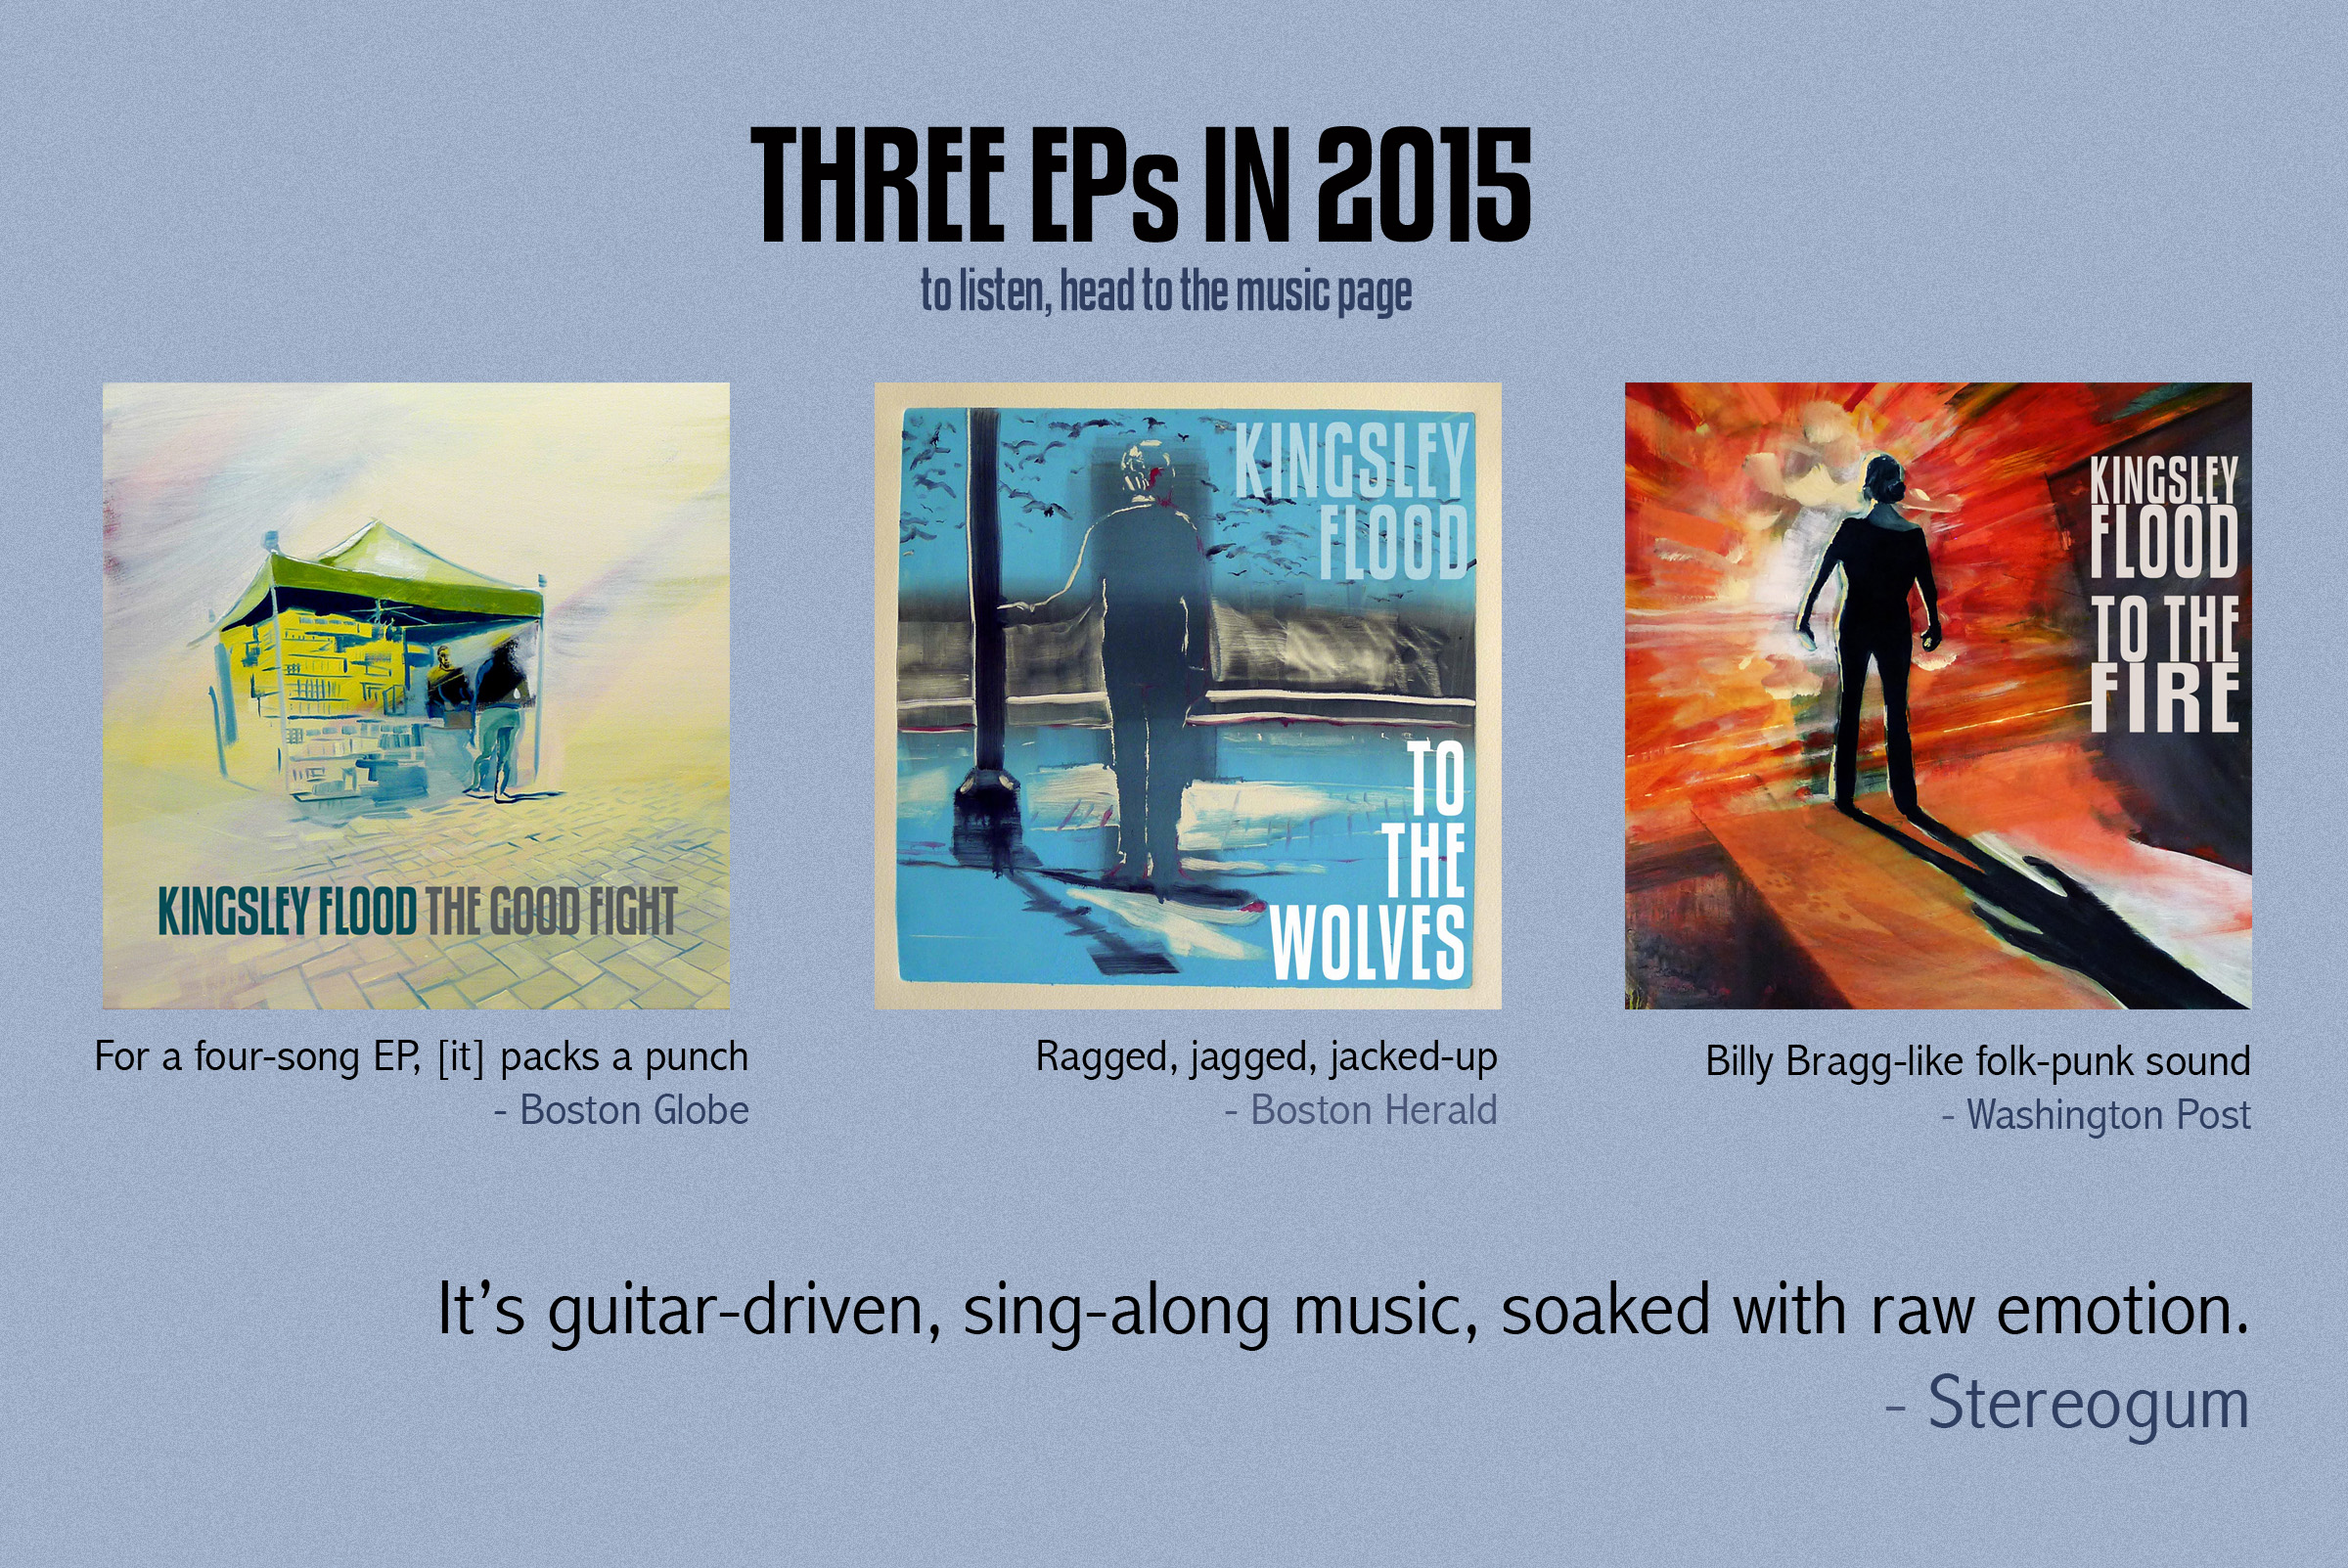 Three EPs in 2015